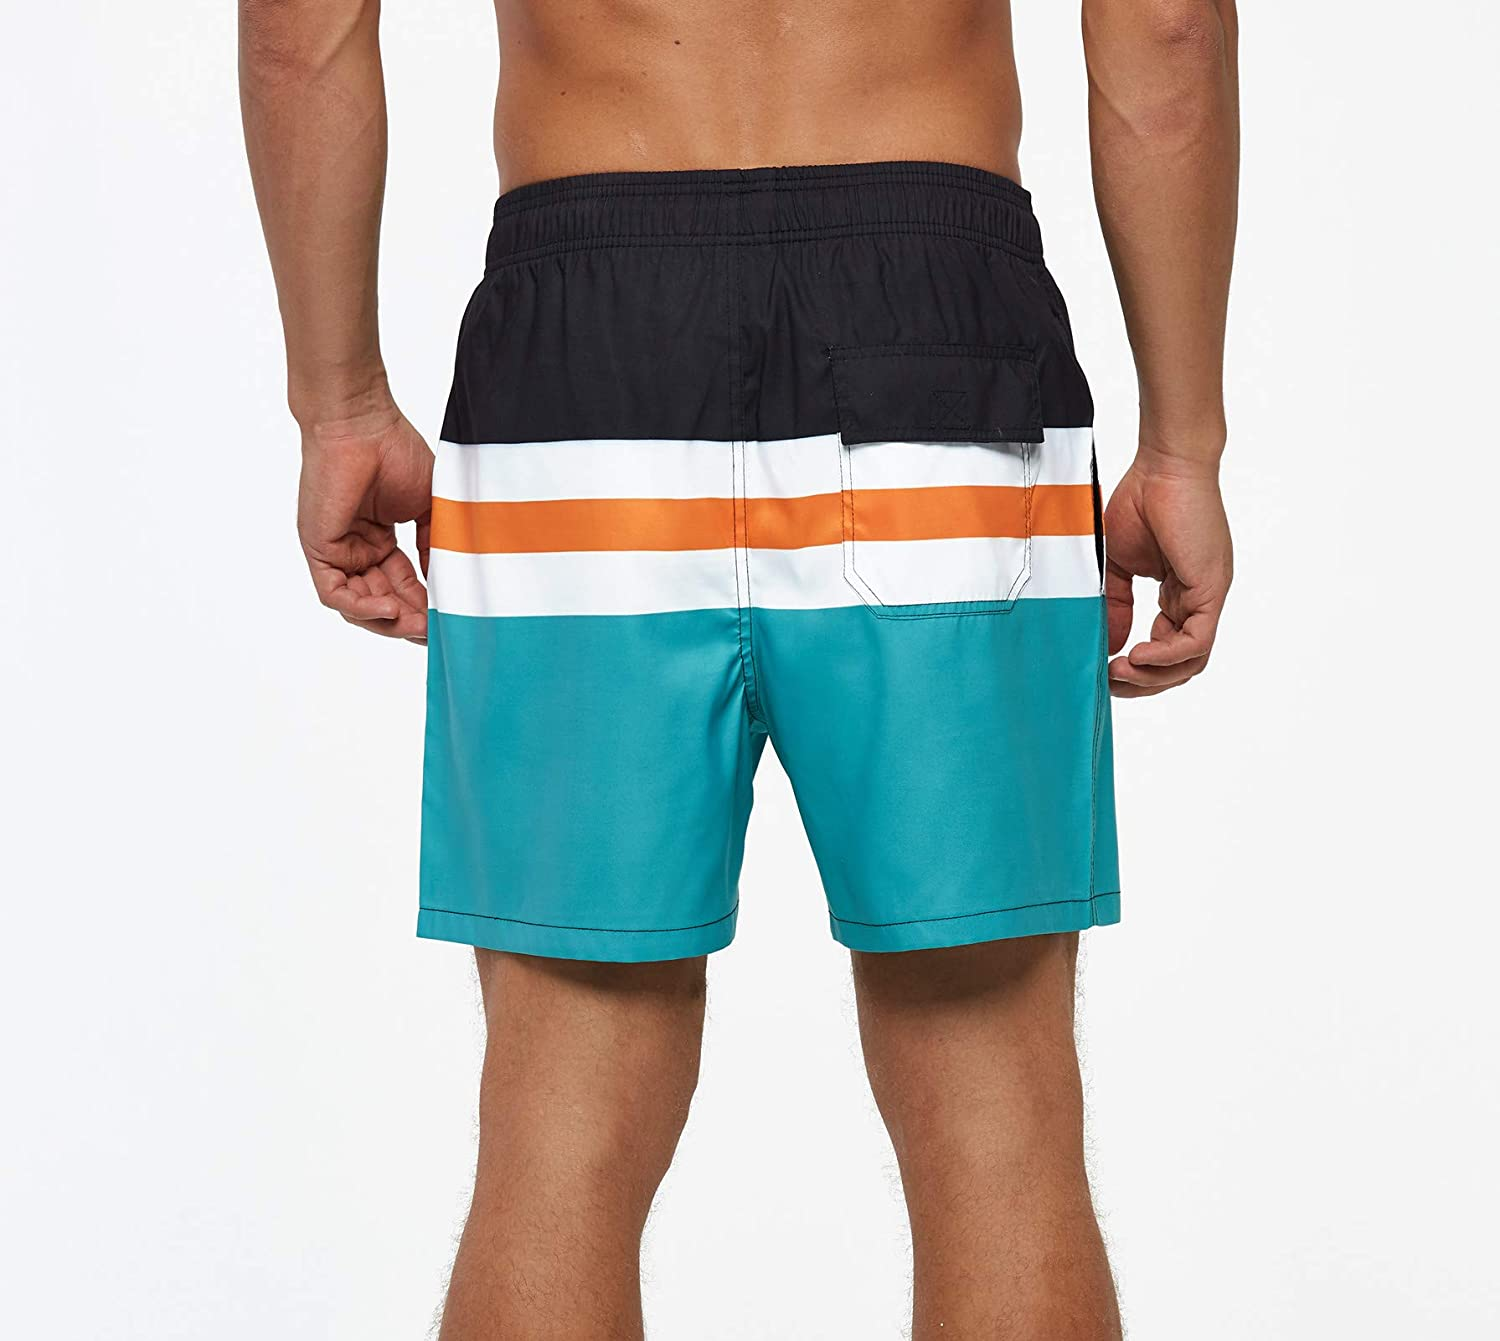 TENMET Men's Quick Dry Swim Trunks Solid Sports Board Shorts Swimsuit with Back Zipper Pockets : Sports & Outdoors